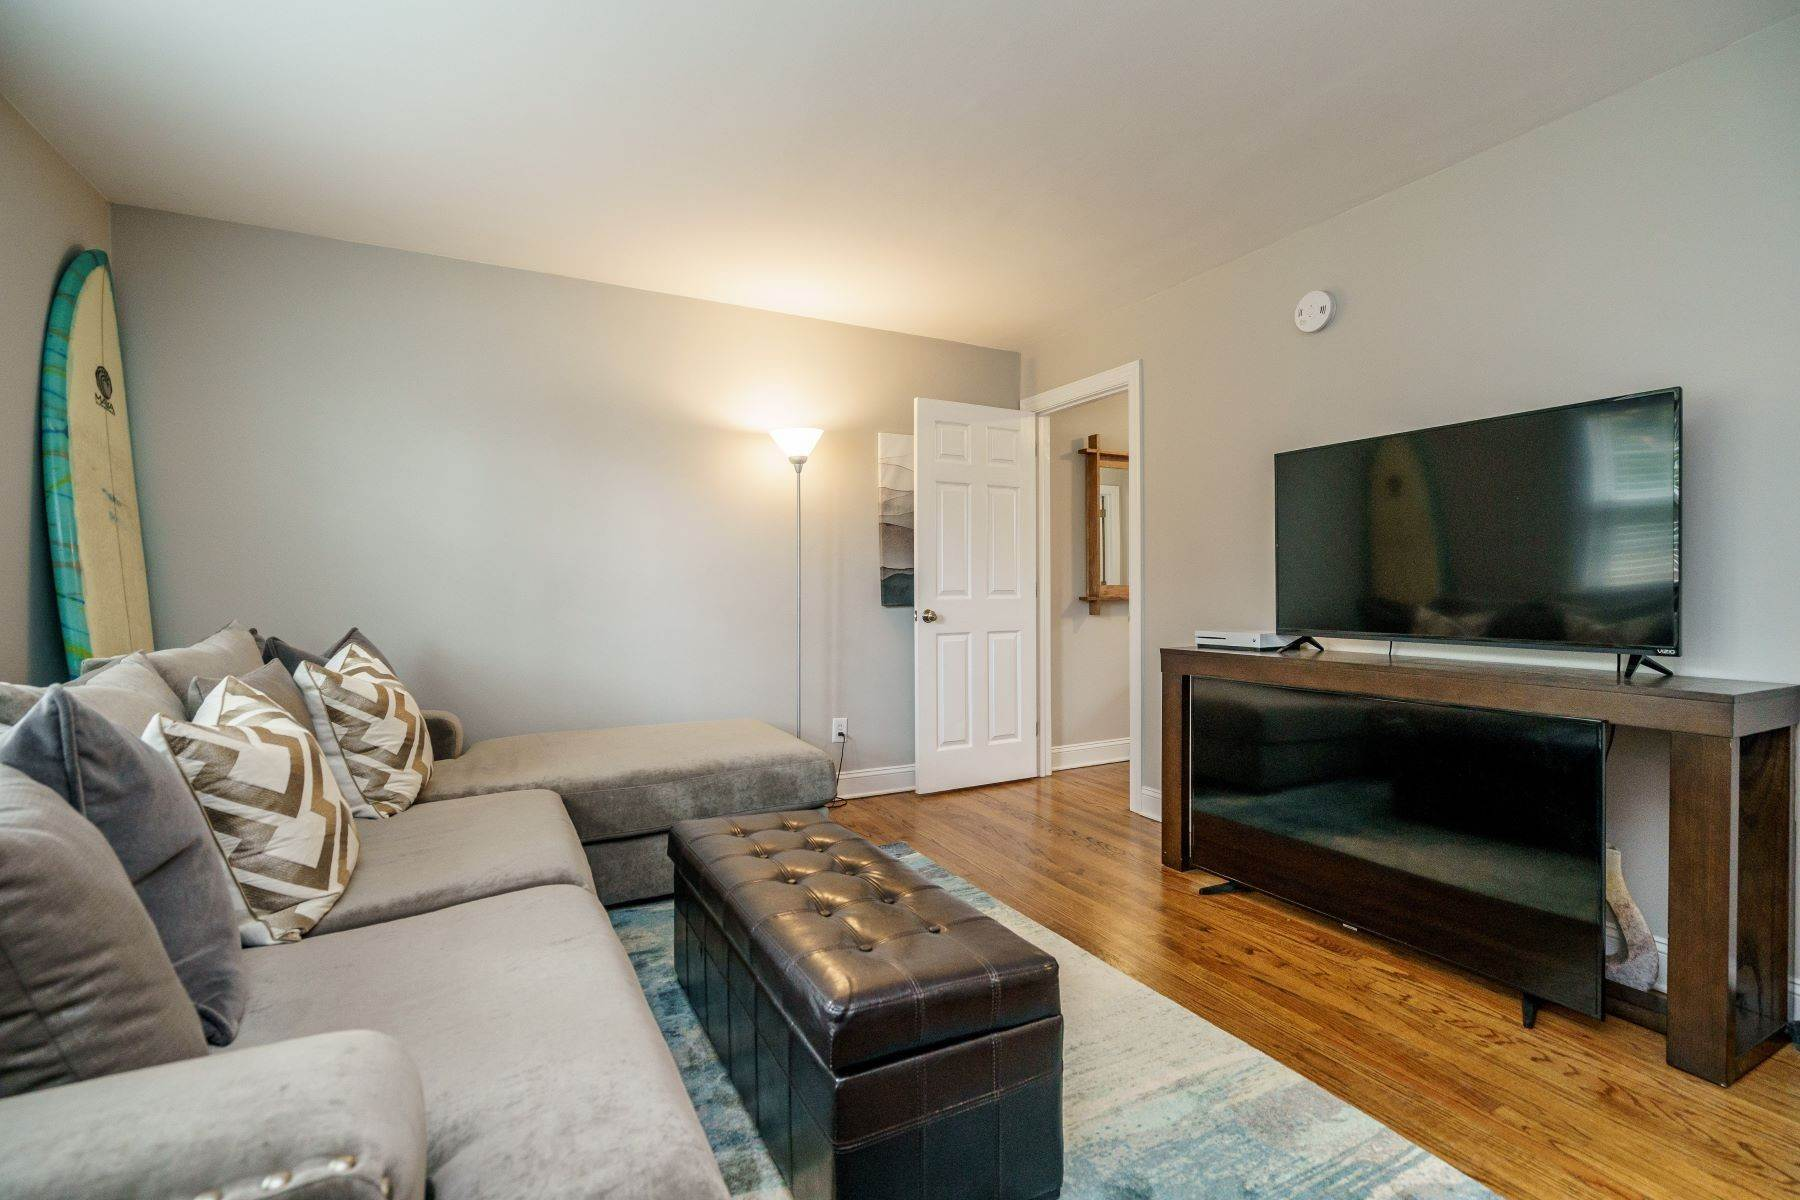 4. Condominiums for Sale at 979 St. Mary's St Unit A Raleigh, North Carolina 27605 United States